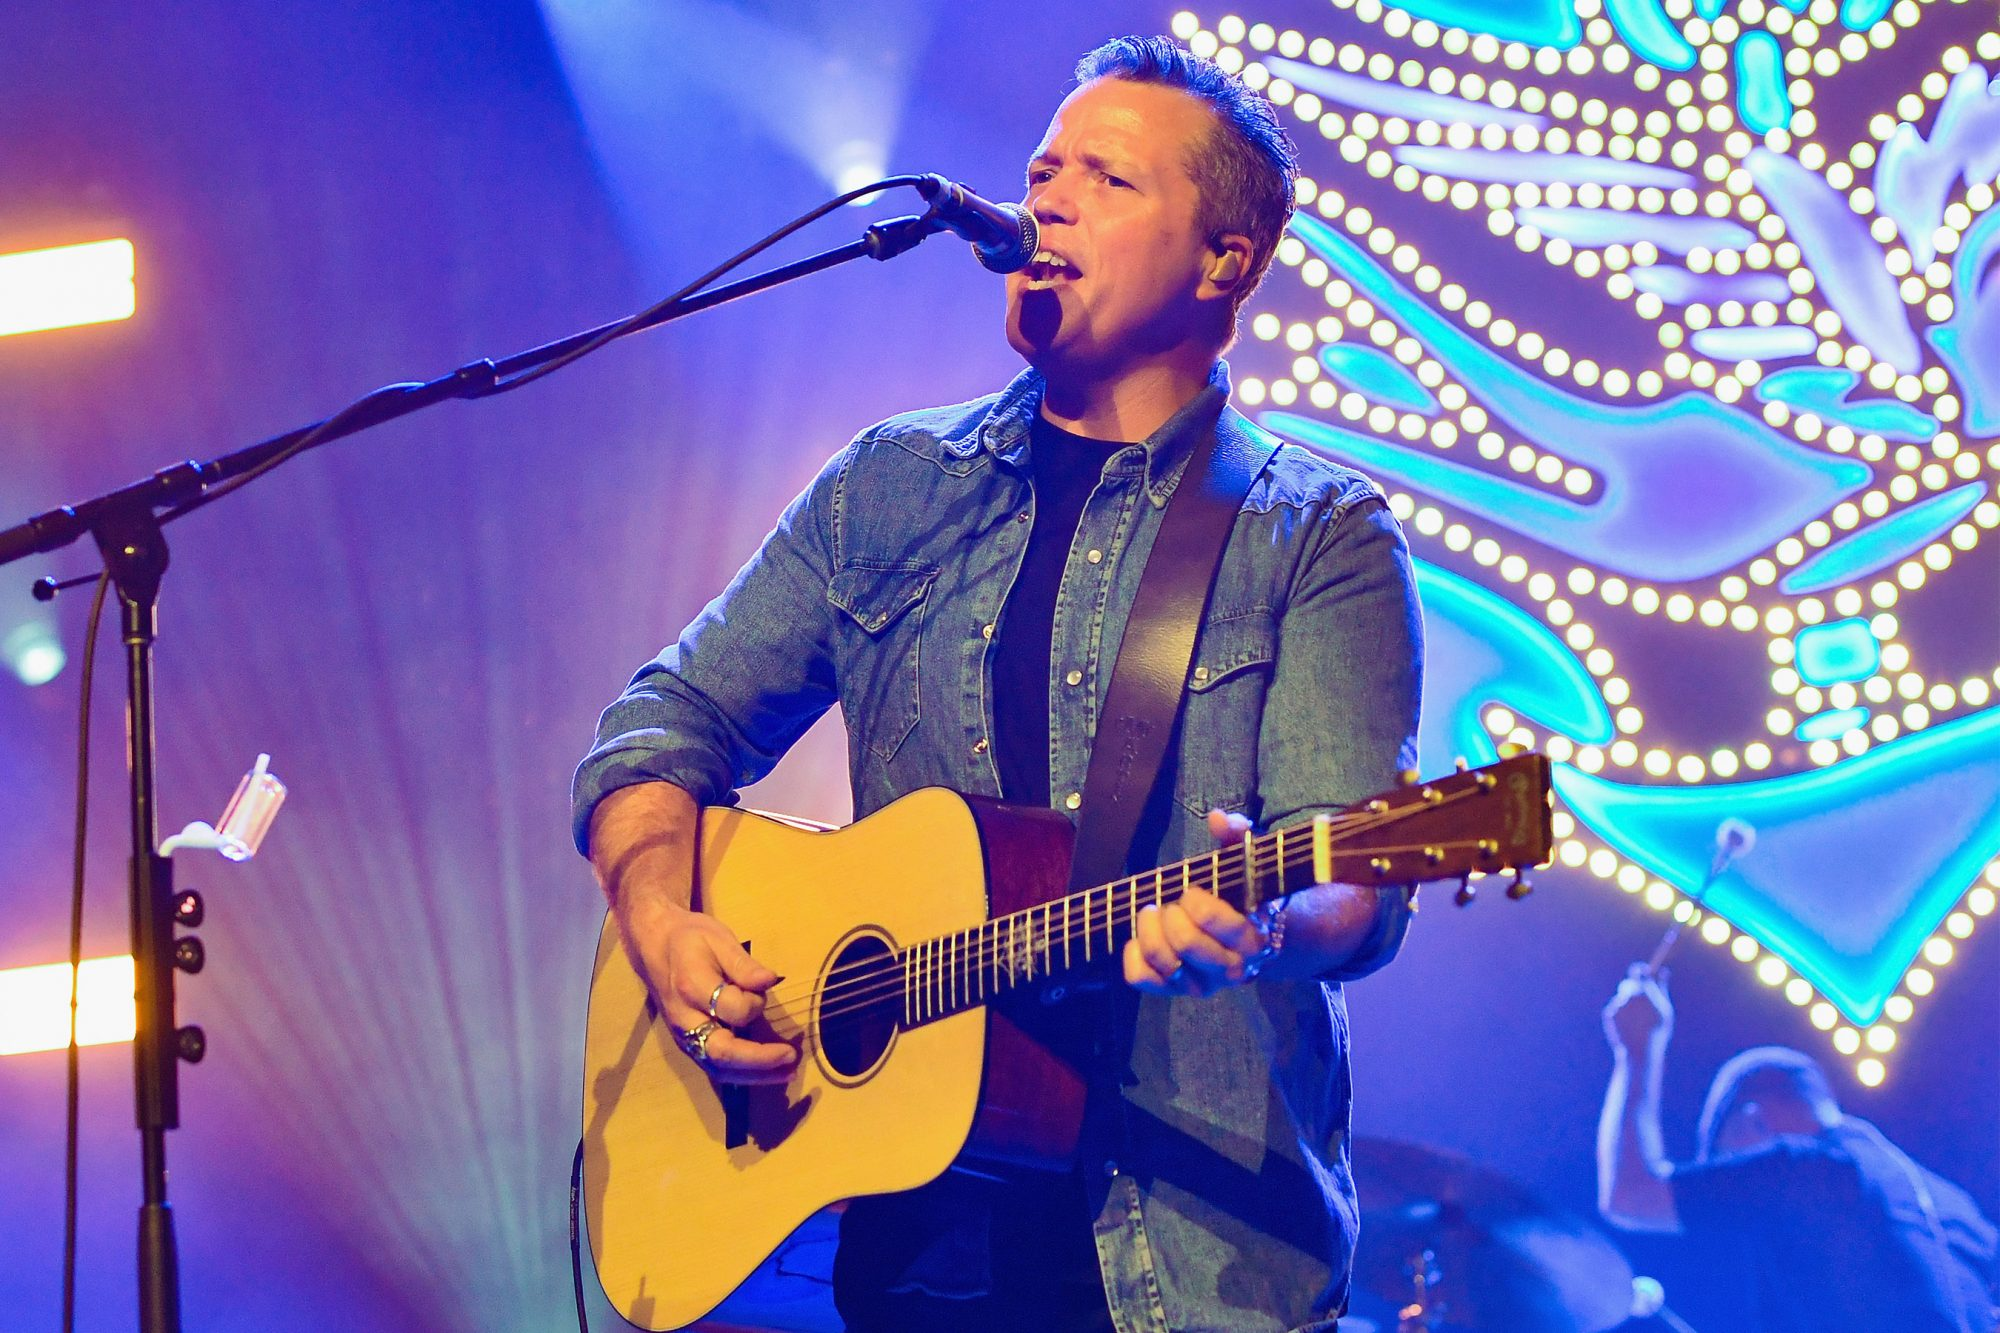 Jason Isbell & The 400 Unit In Concert - Nashville, TN